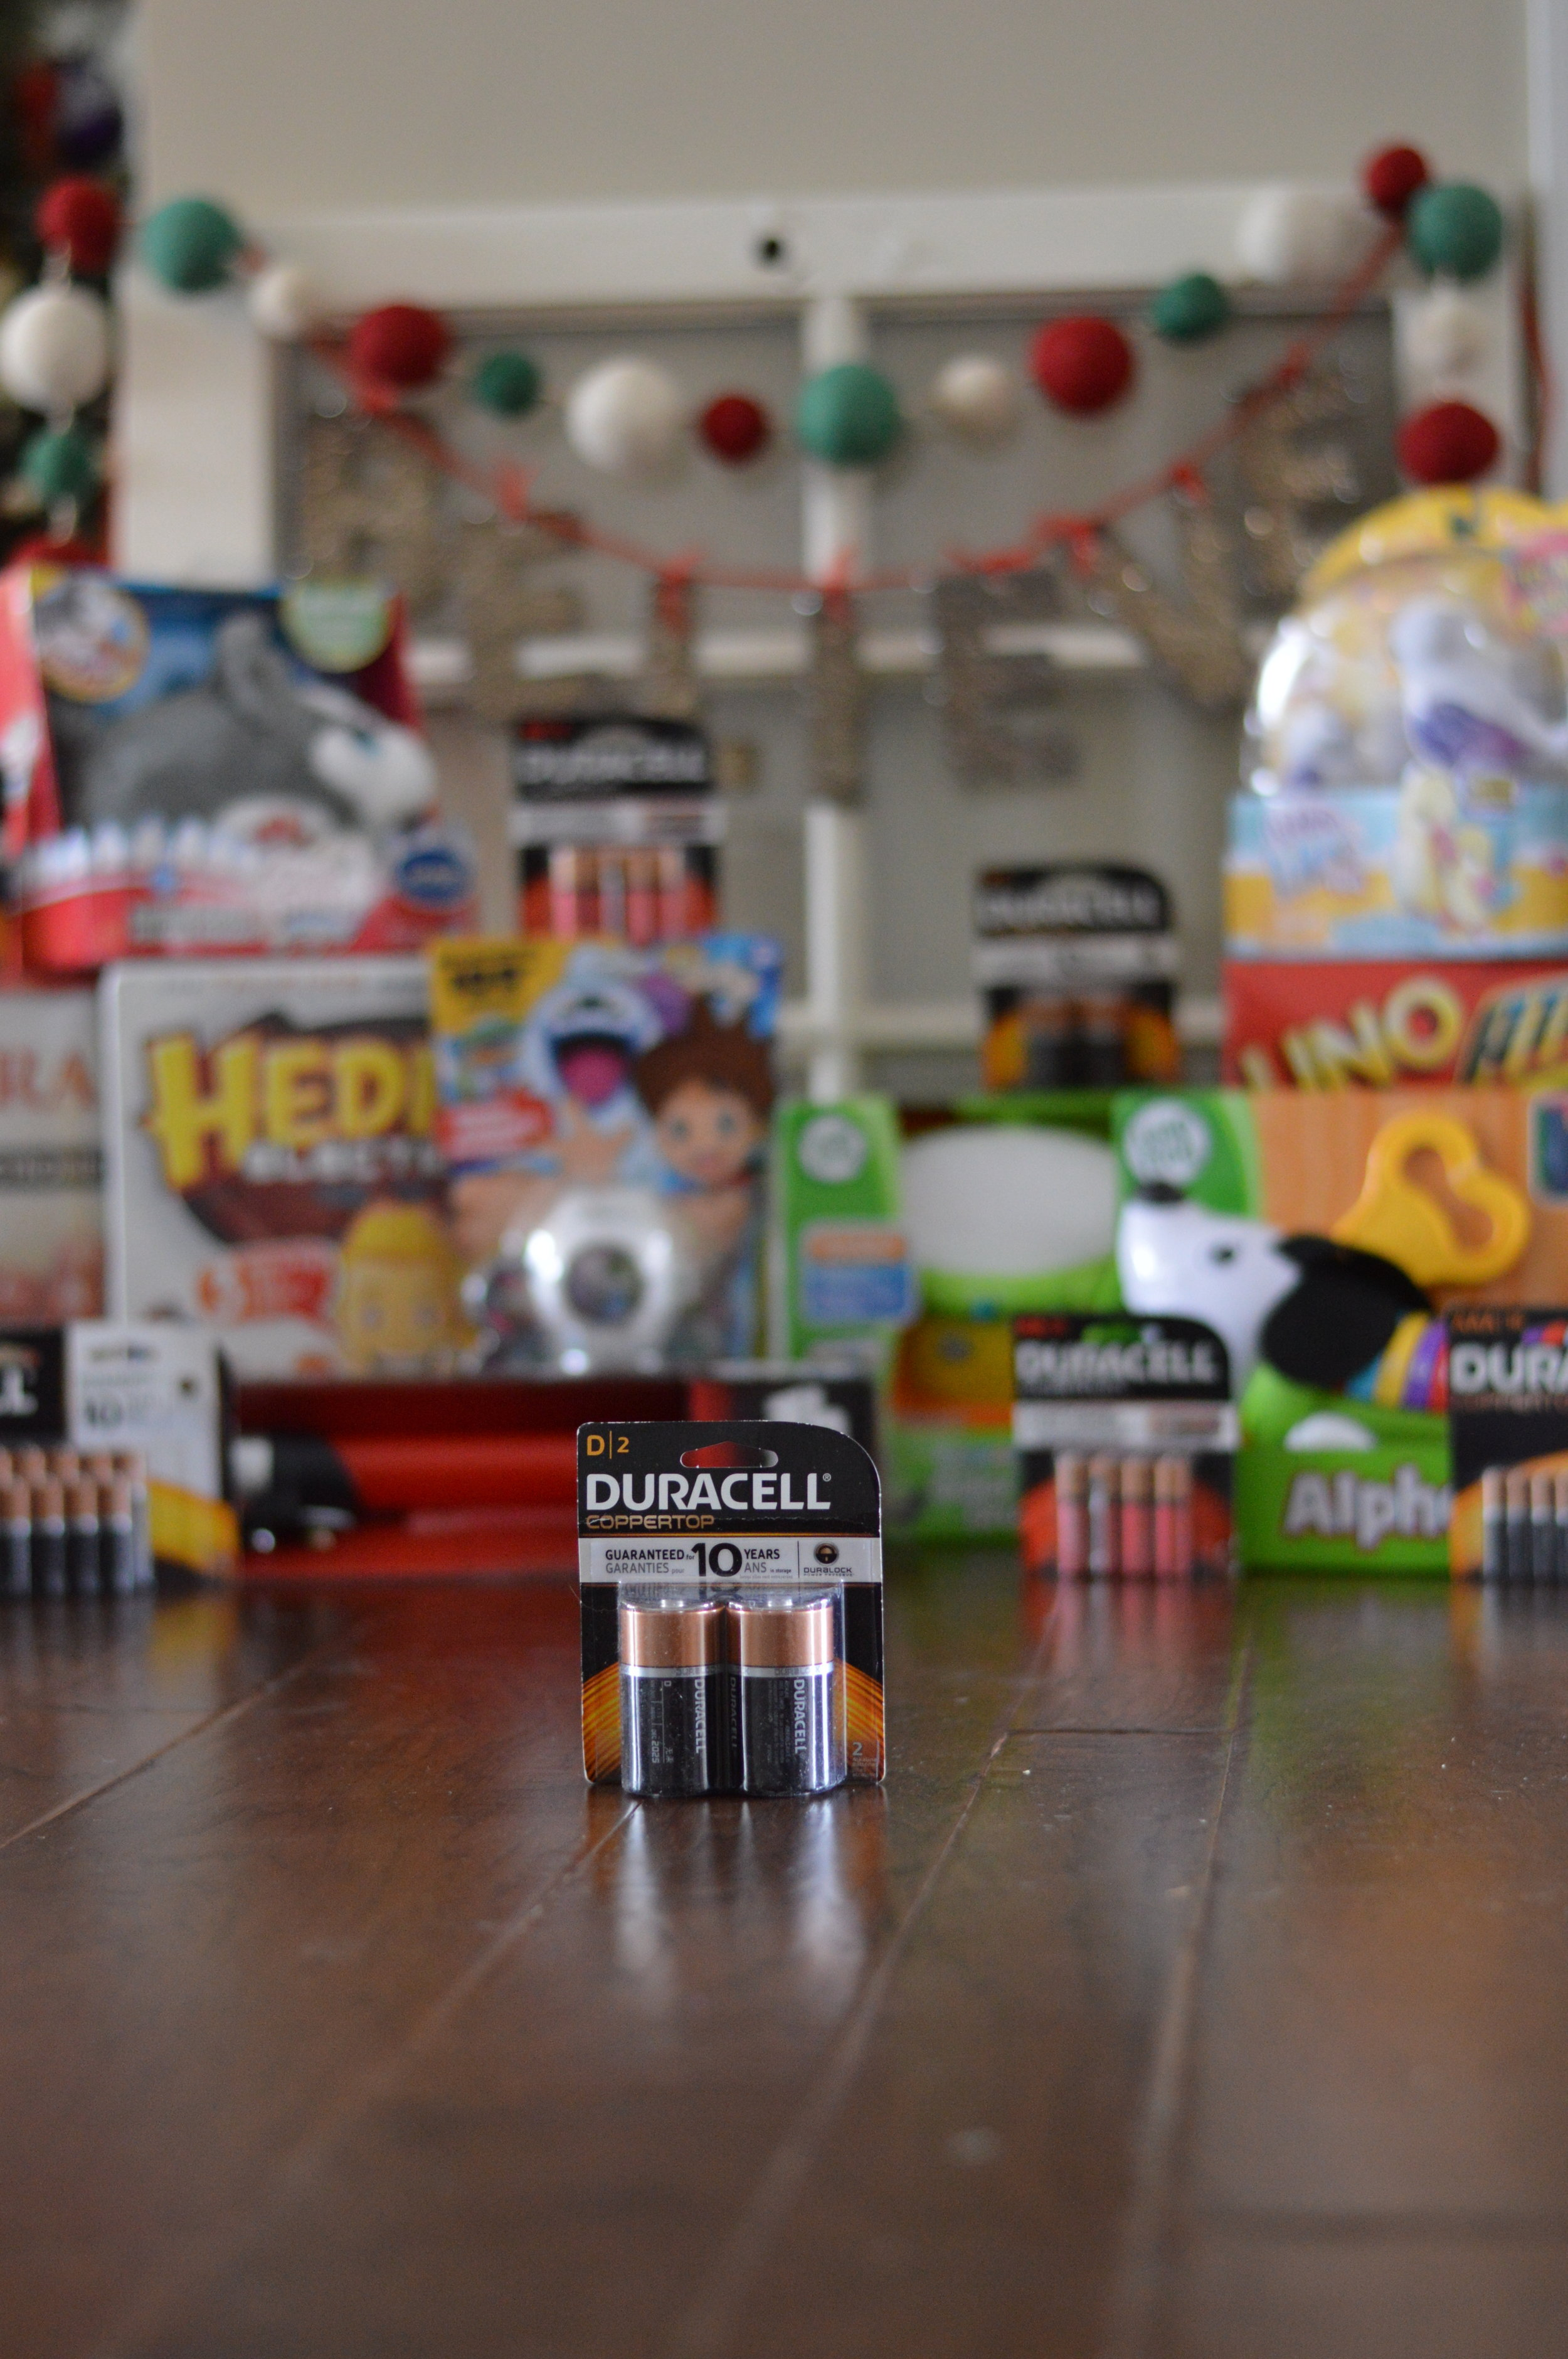 duracell powers play